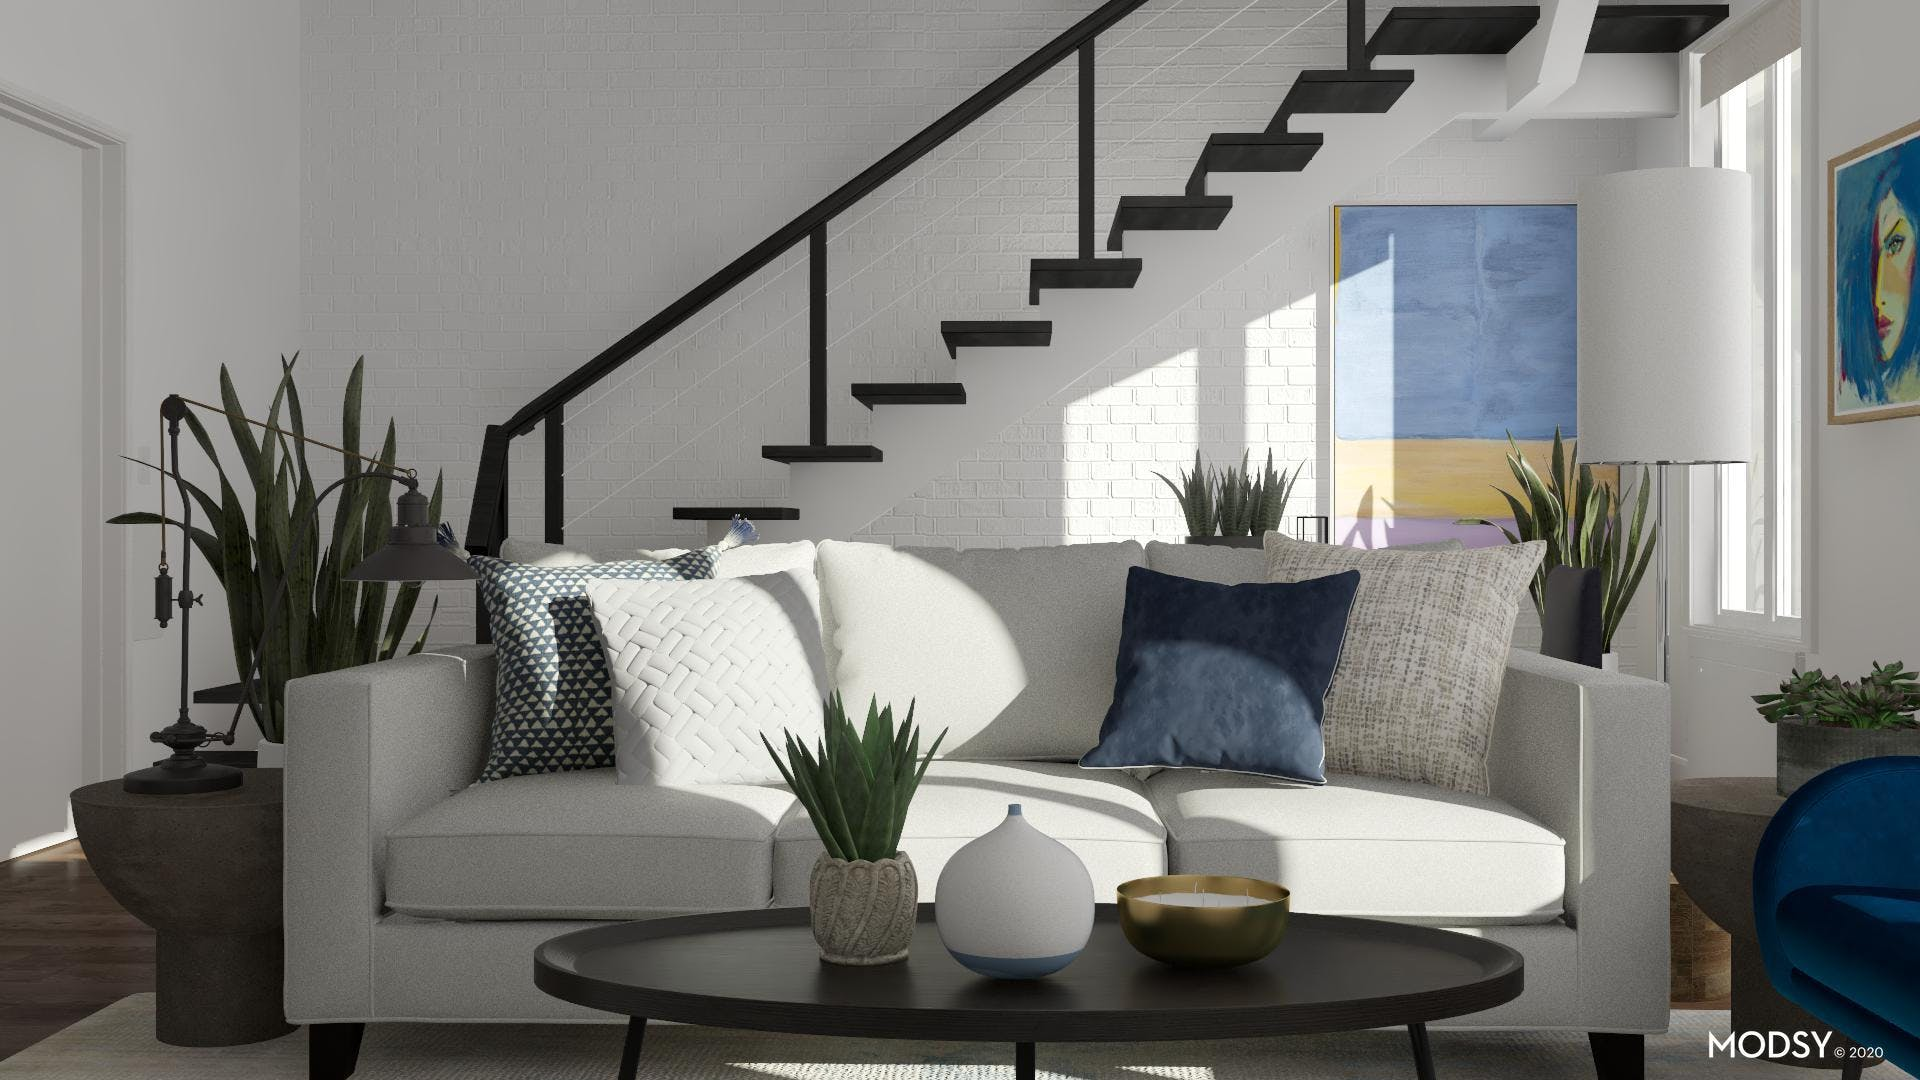 Mix It Up: Industrial